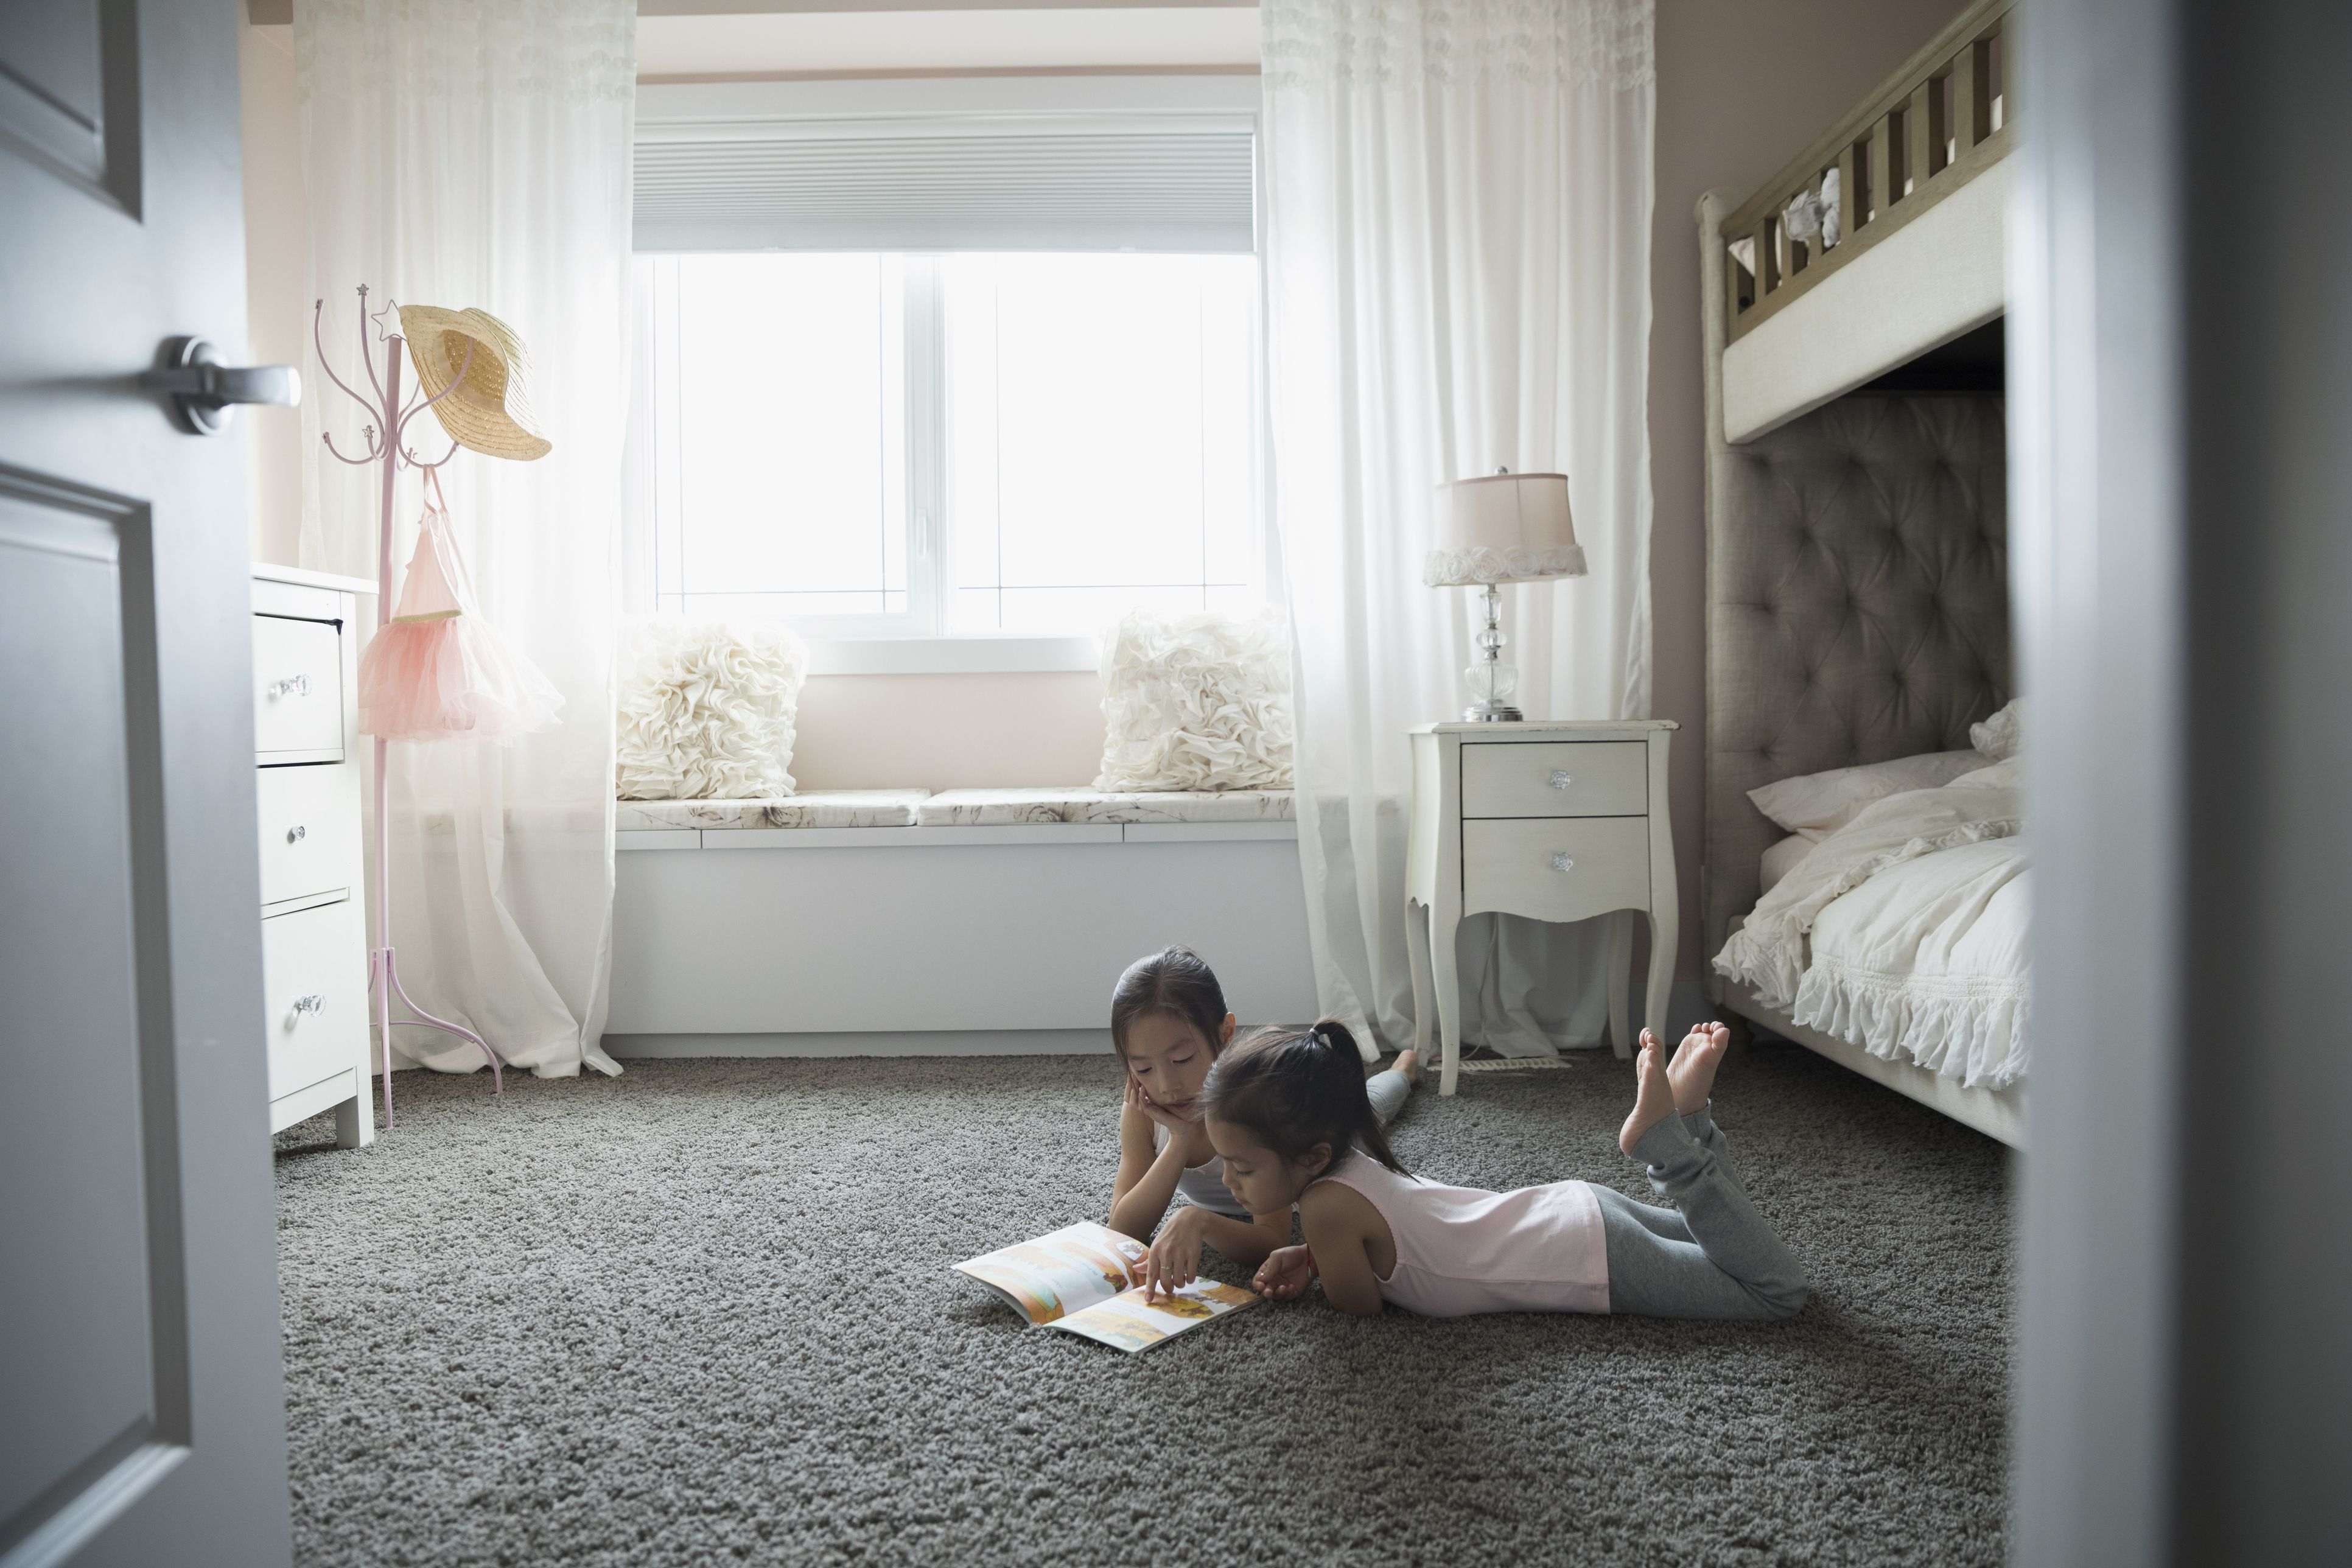 Sisters reading book on carpet in bedroom